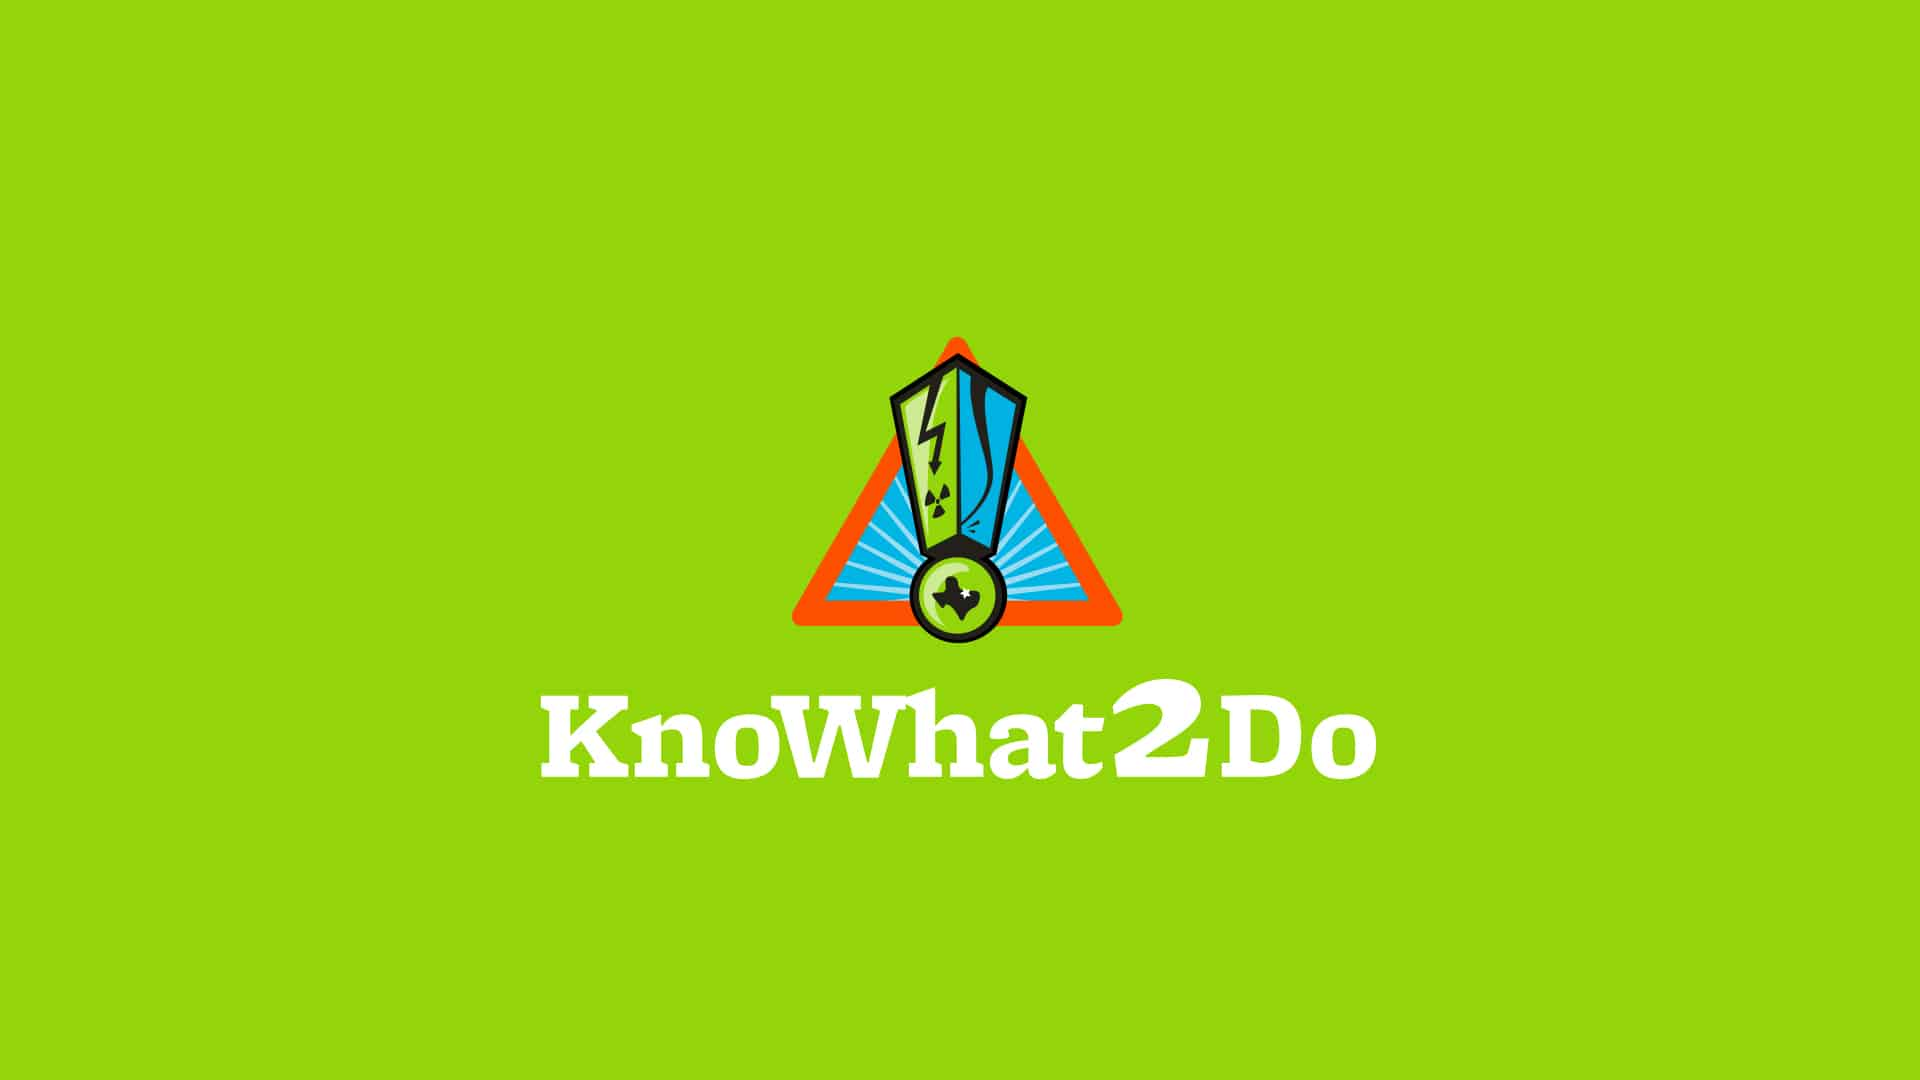 Know What 2 Do